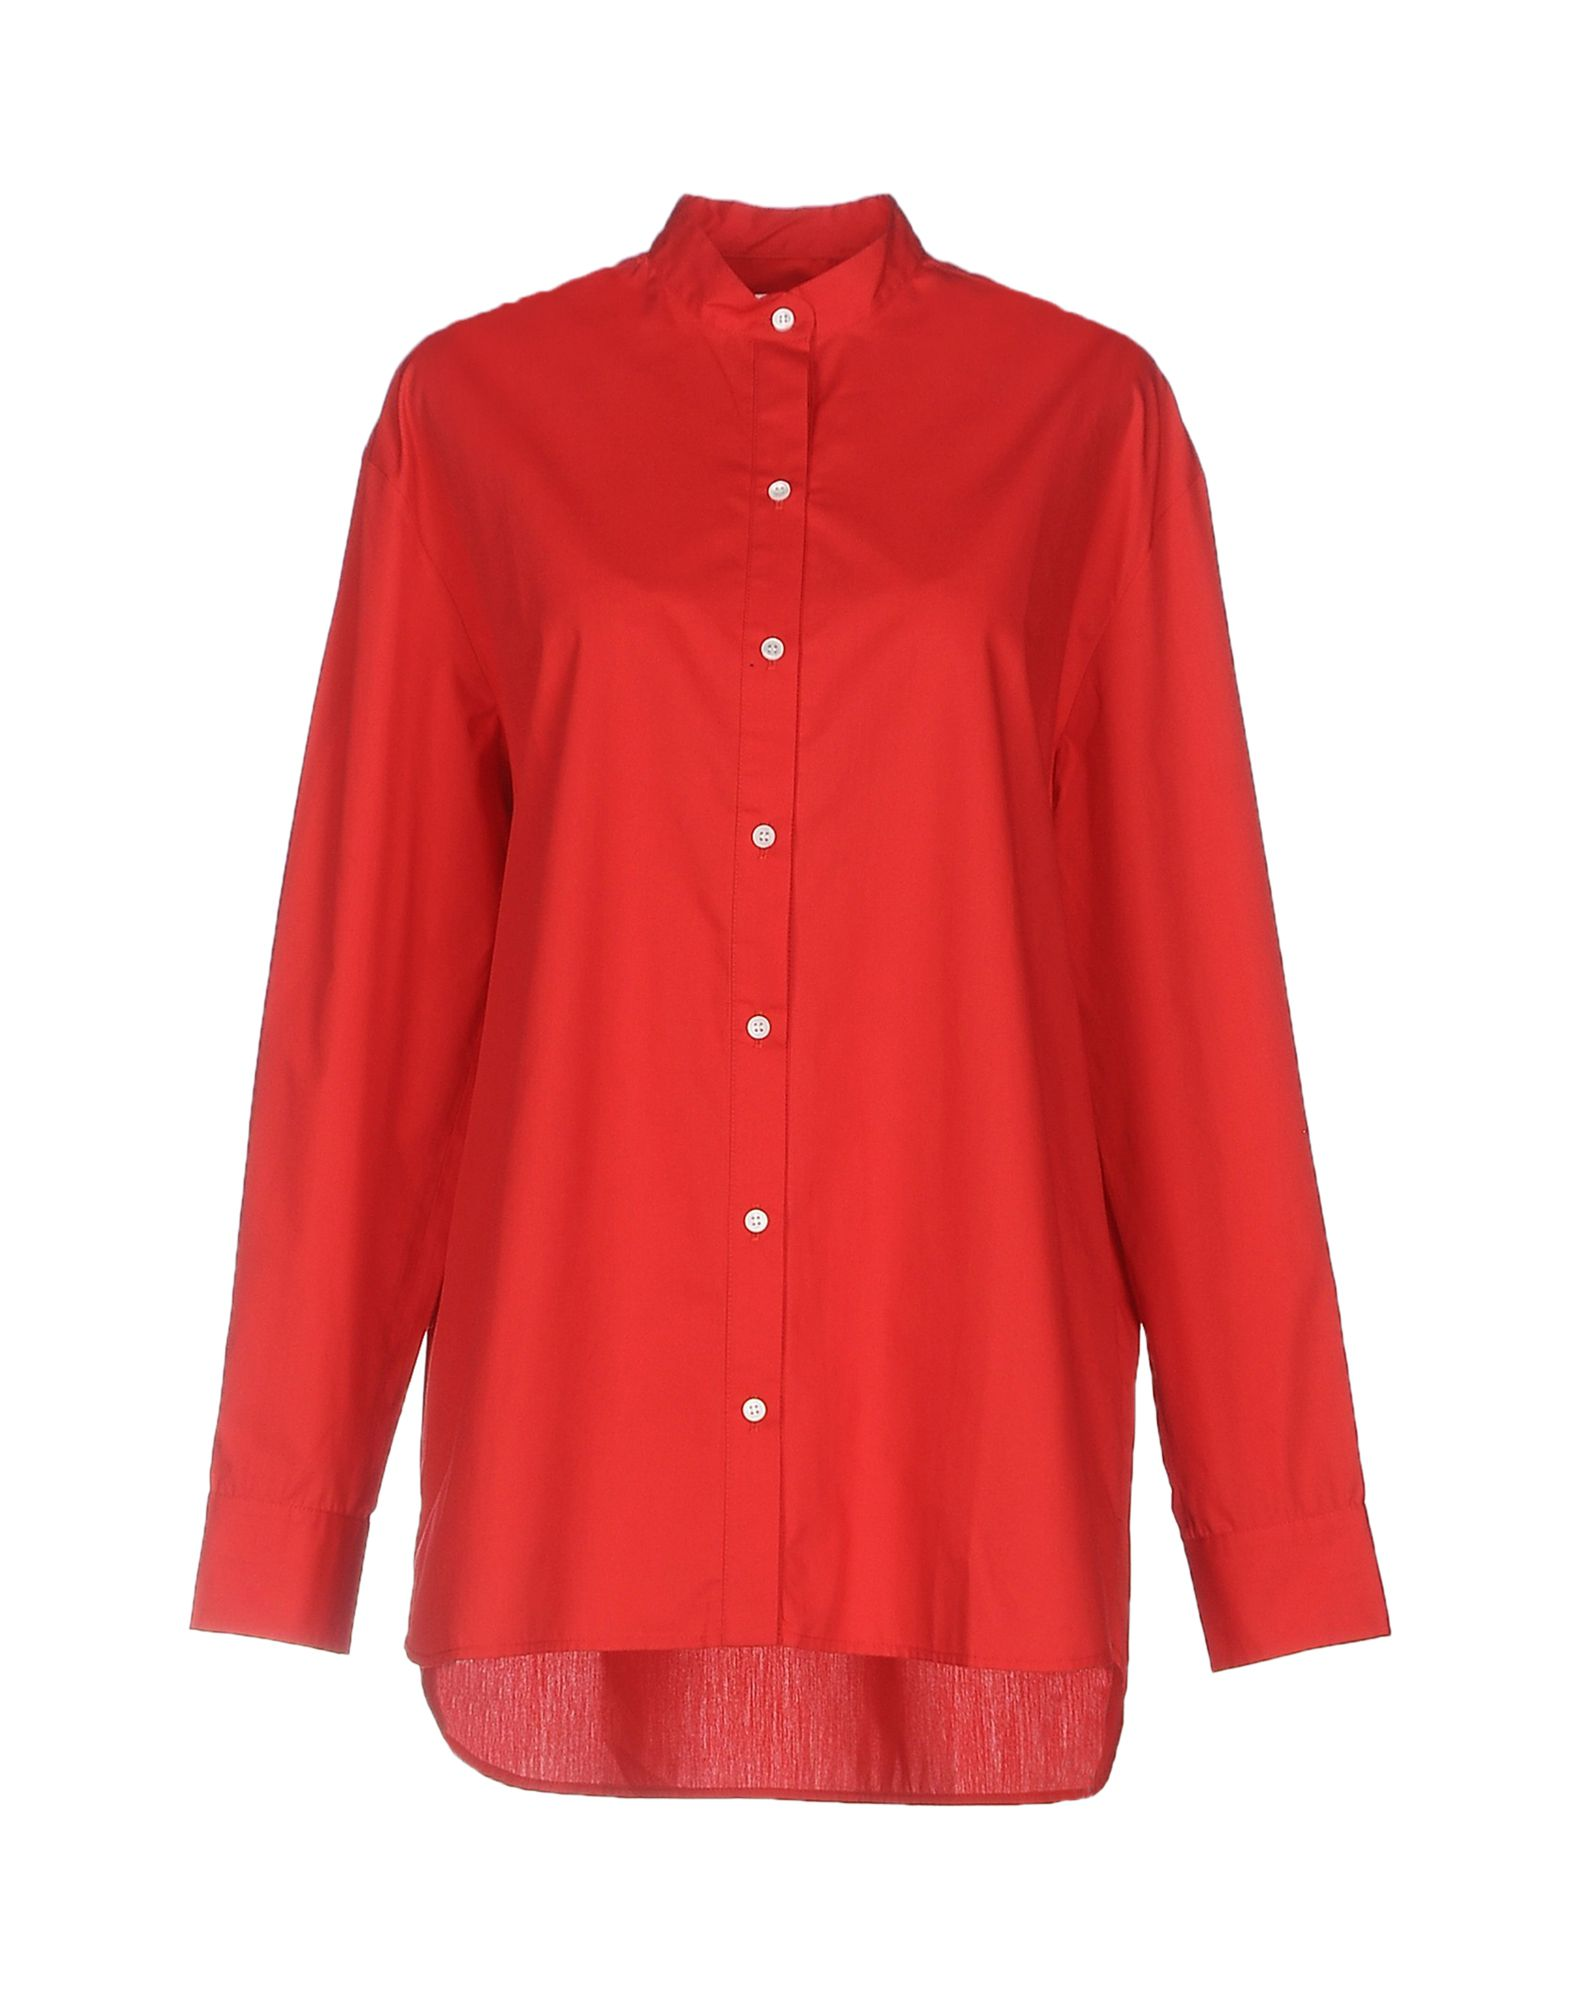 ATEA OCEANIE Solid Color Shirts & Blouses in Red